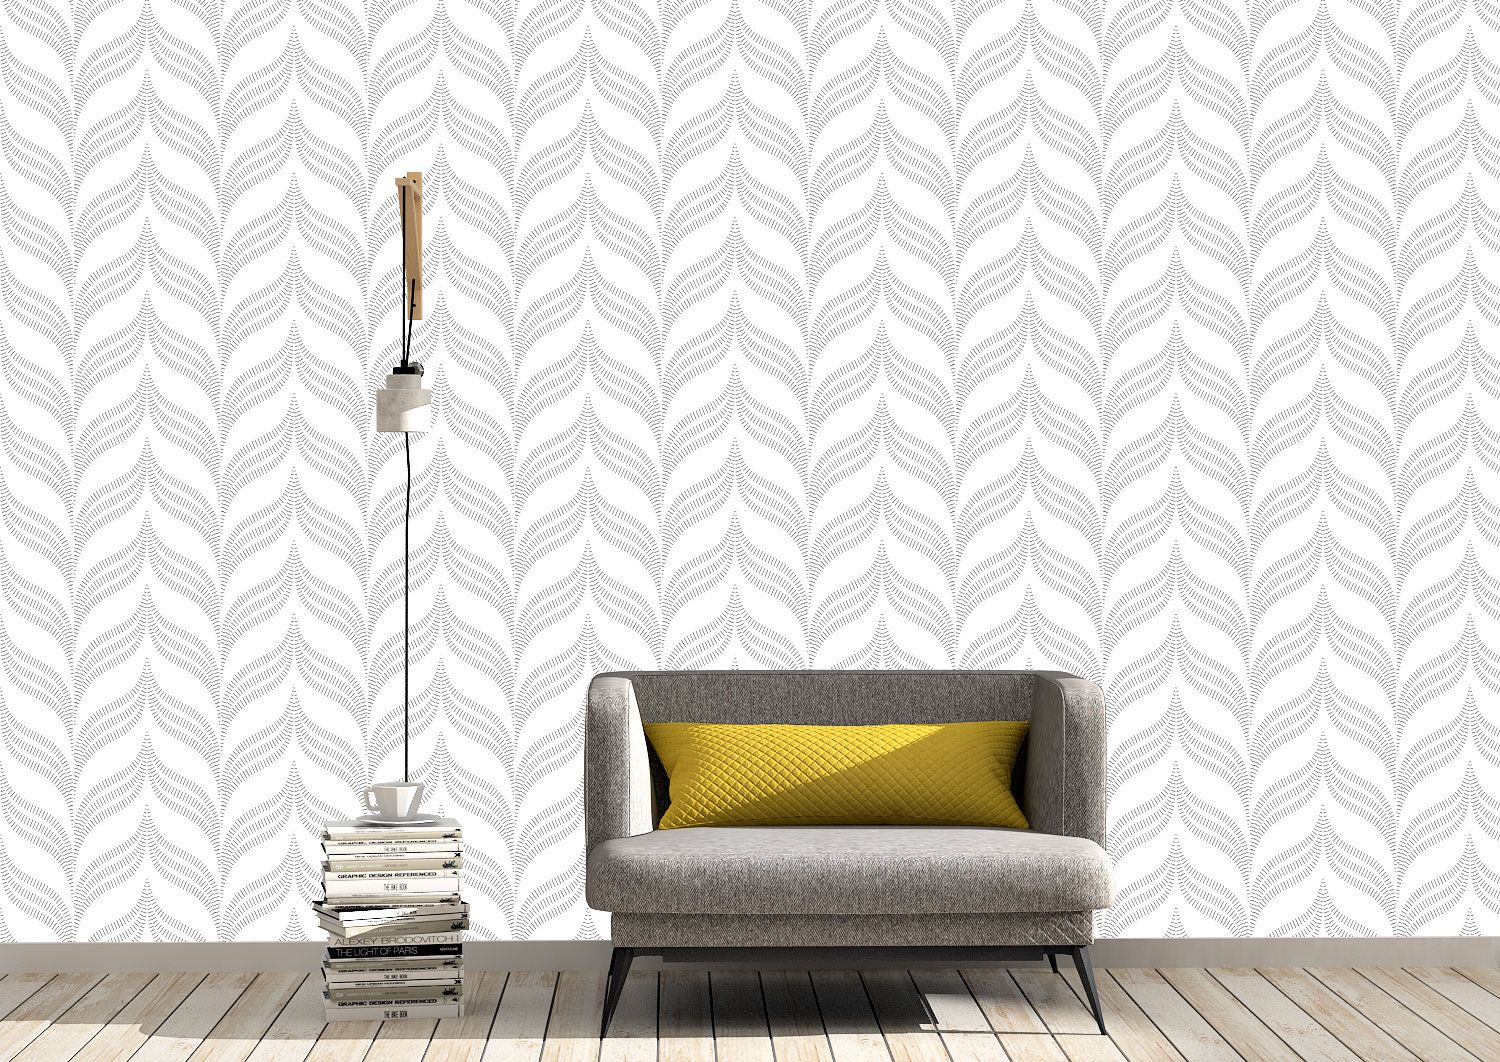 Removable Peel And Stick Wallpaper Black And White Geometric Etsy In 2020 Peel And Stick Wallpaper Vinyl Wallpaper Removable Wallpaper